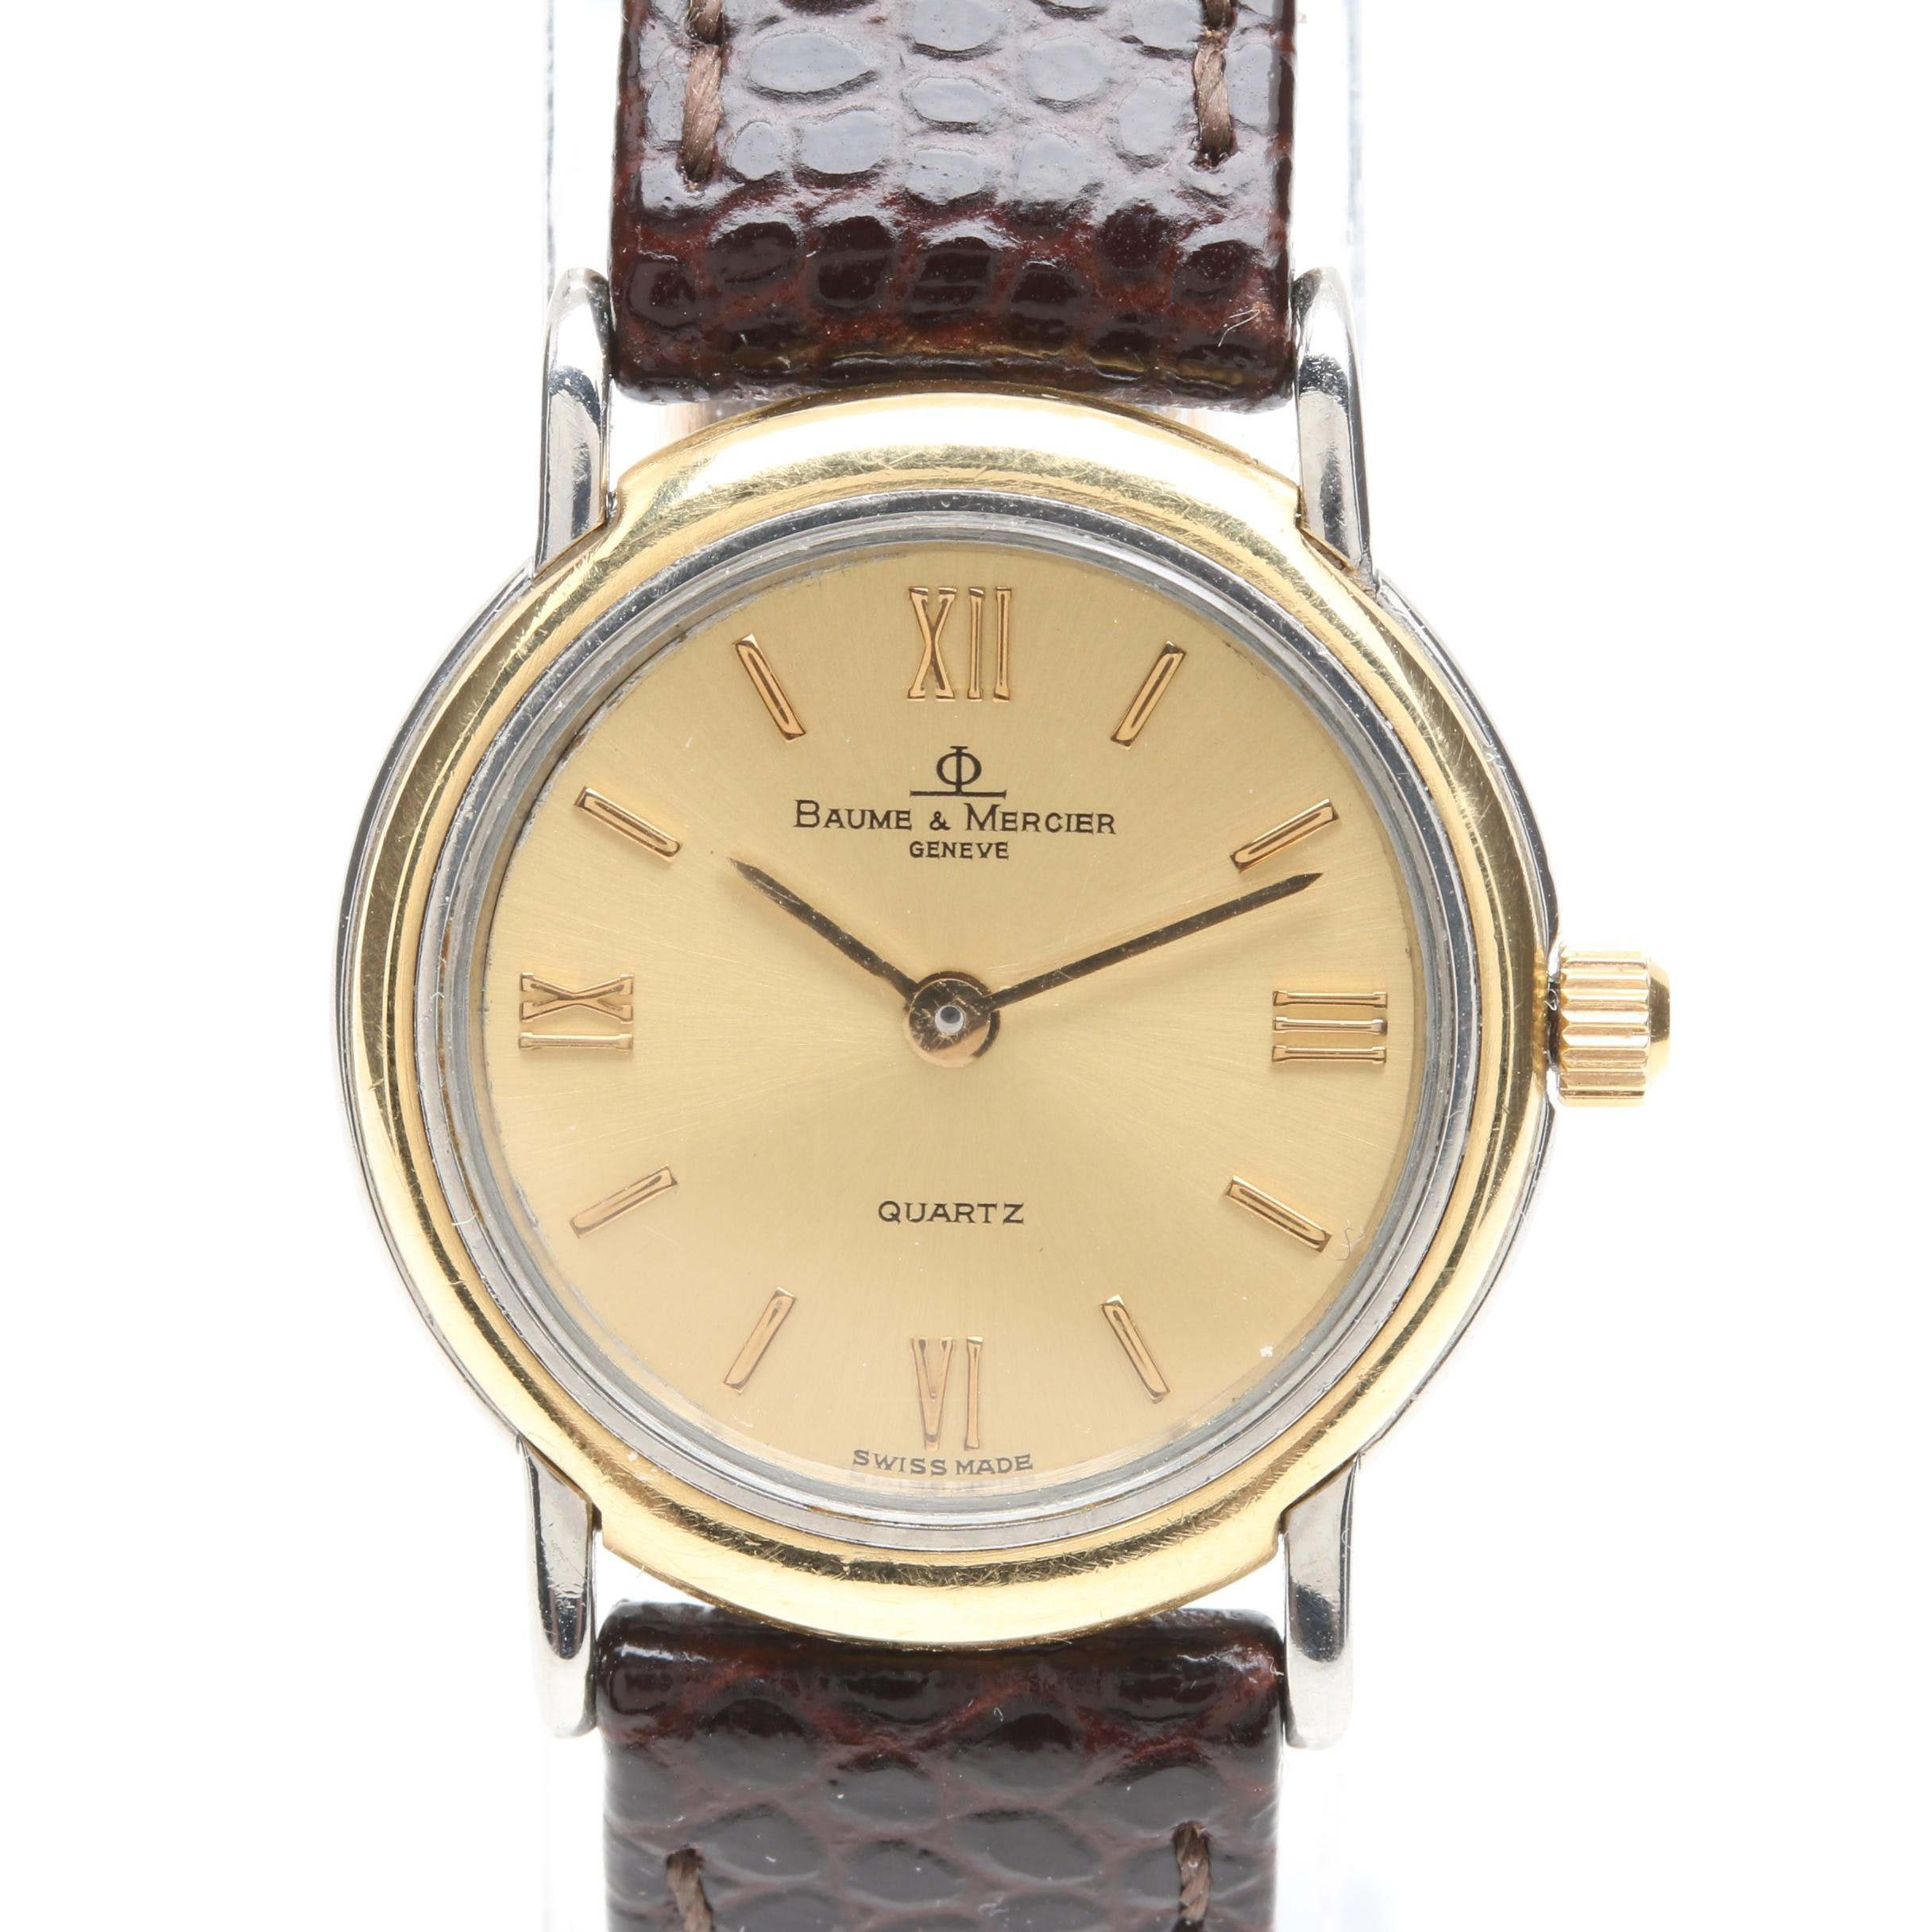 Baume & Mercier Stainless Steel and Leather Strap Wristwatch